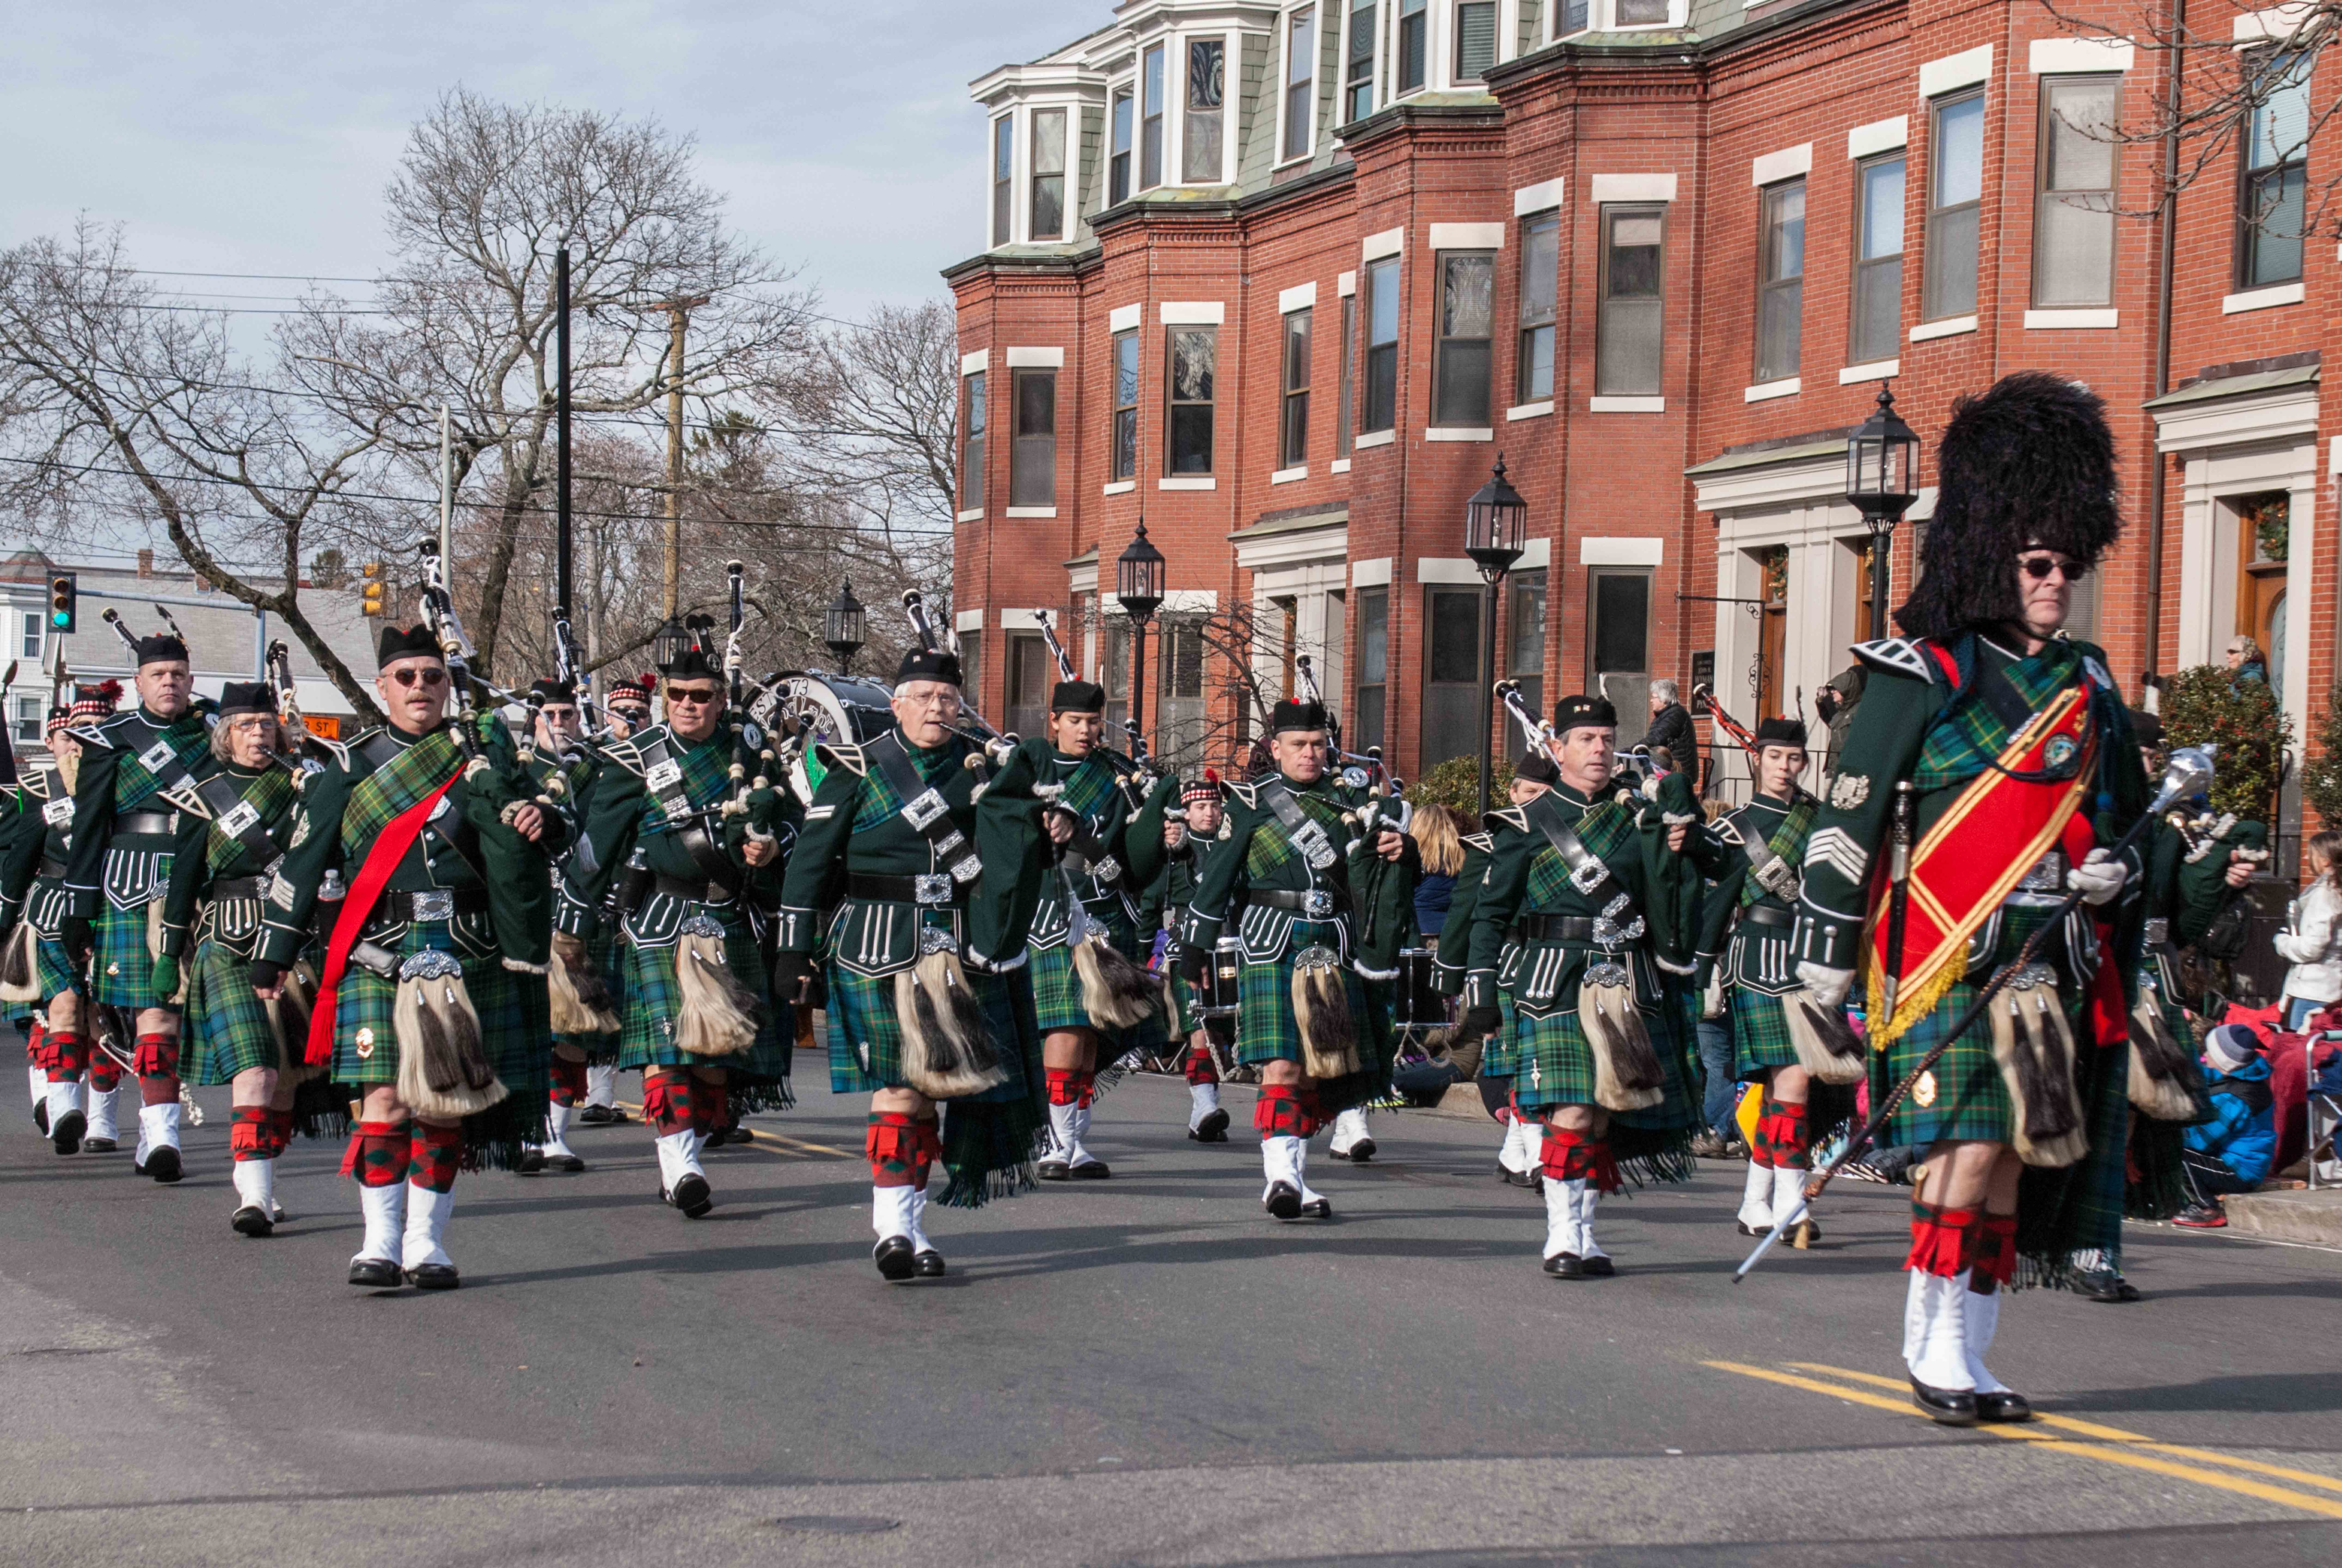 The band wearing the traditional dress uniform of the Highland Light Infantry, marching in the Plymouth Thanksgiving parade.